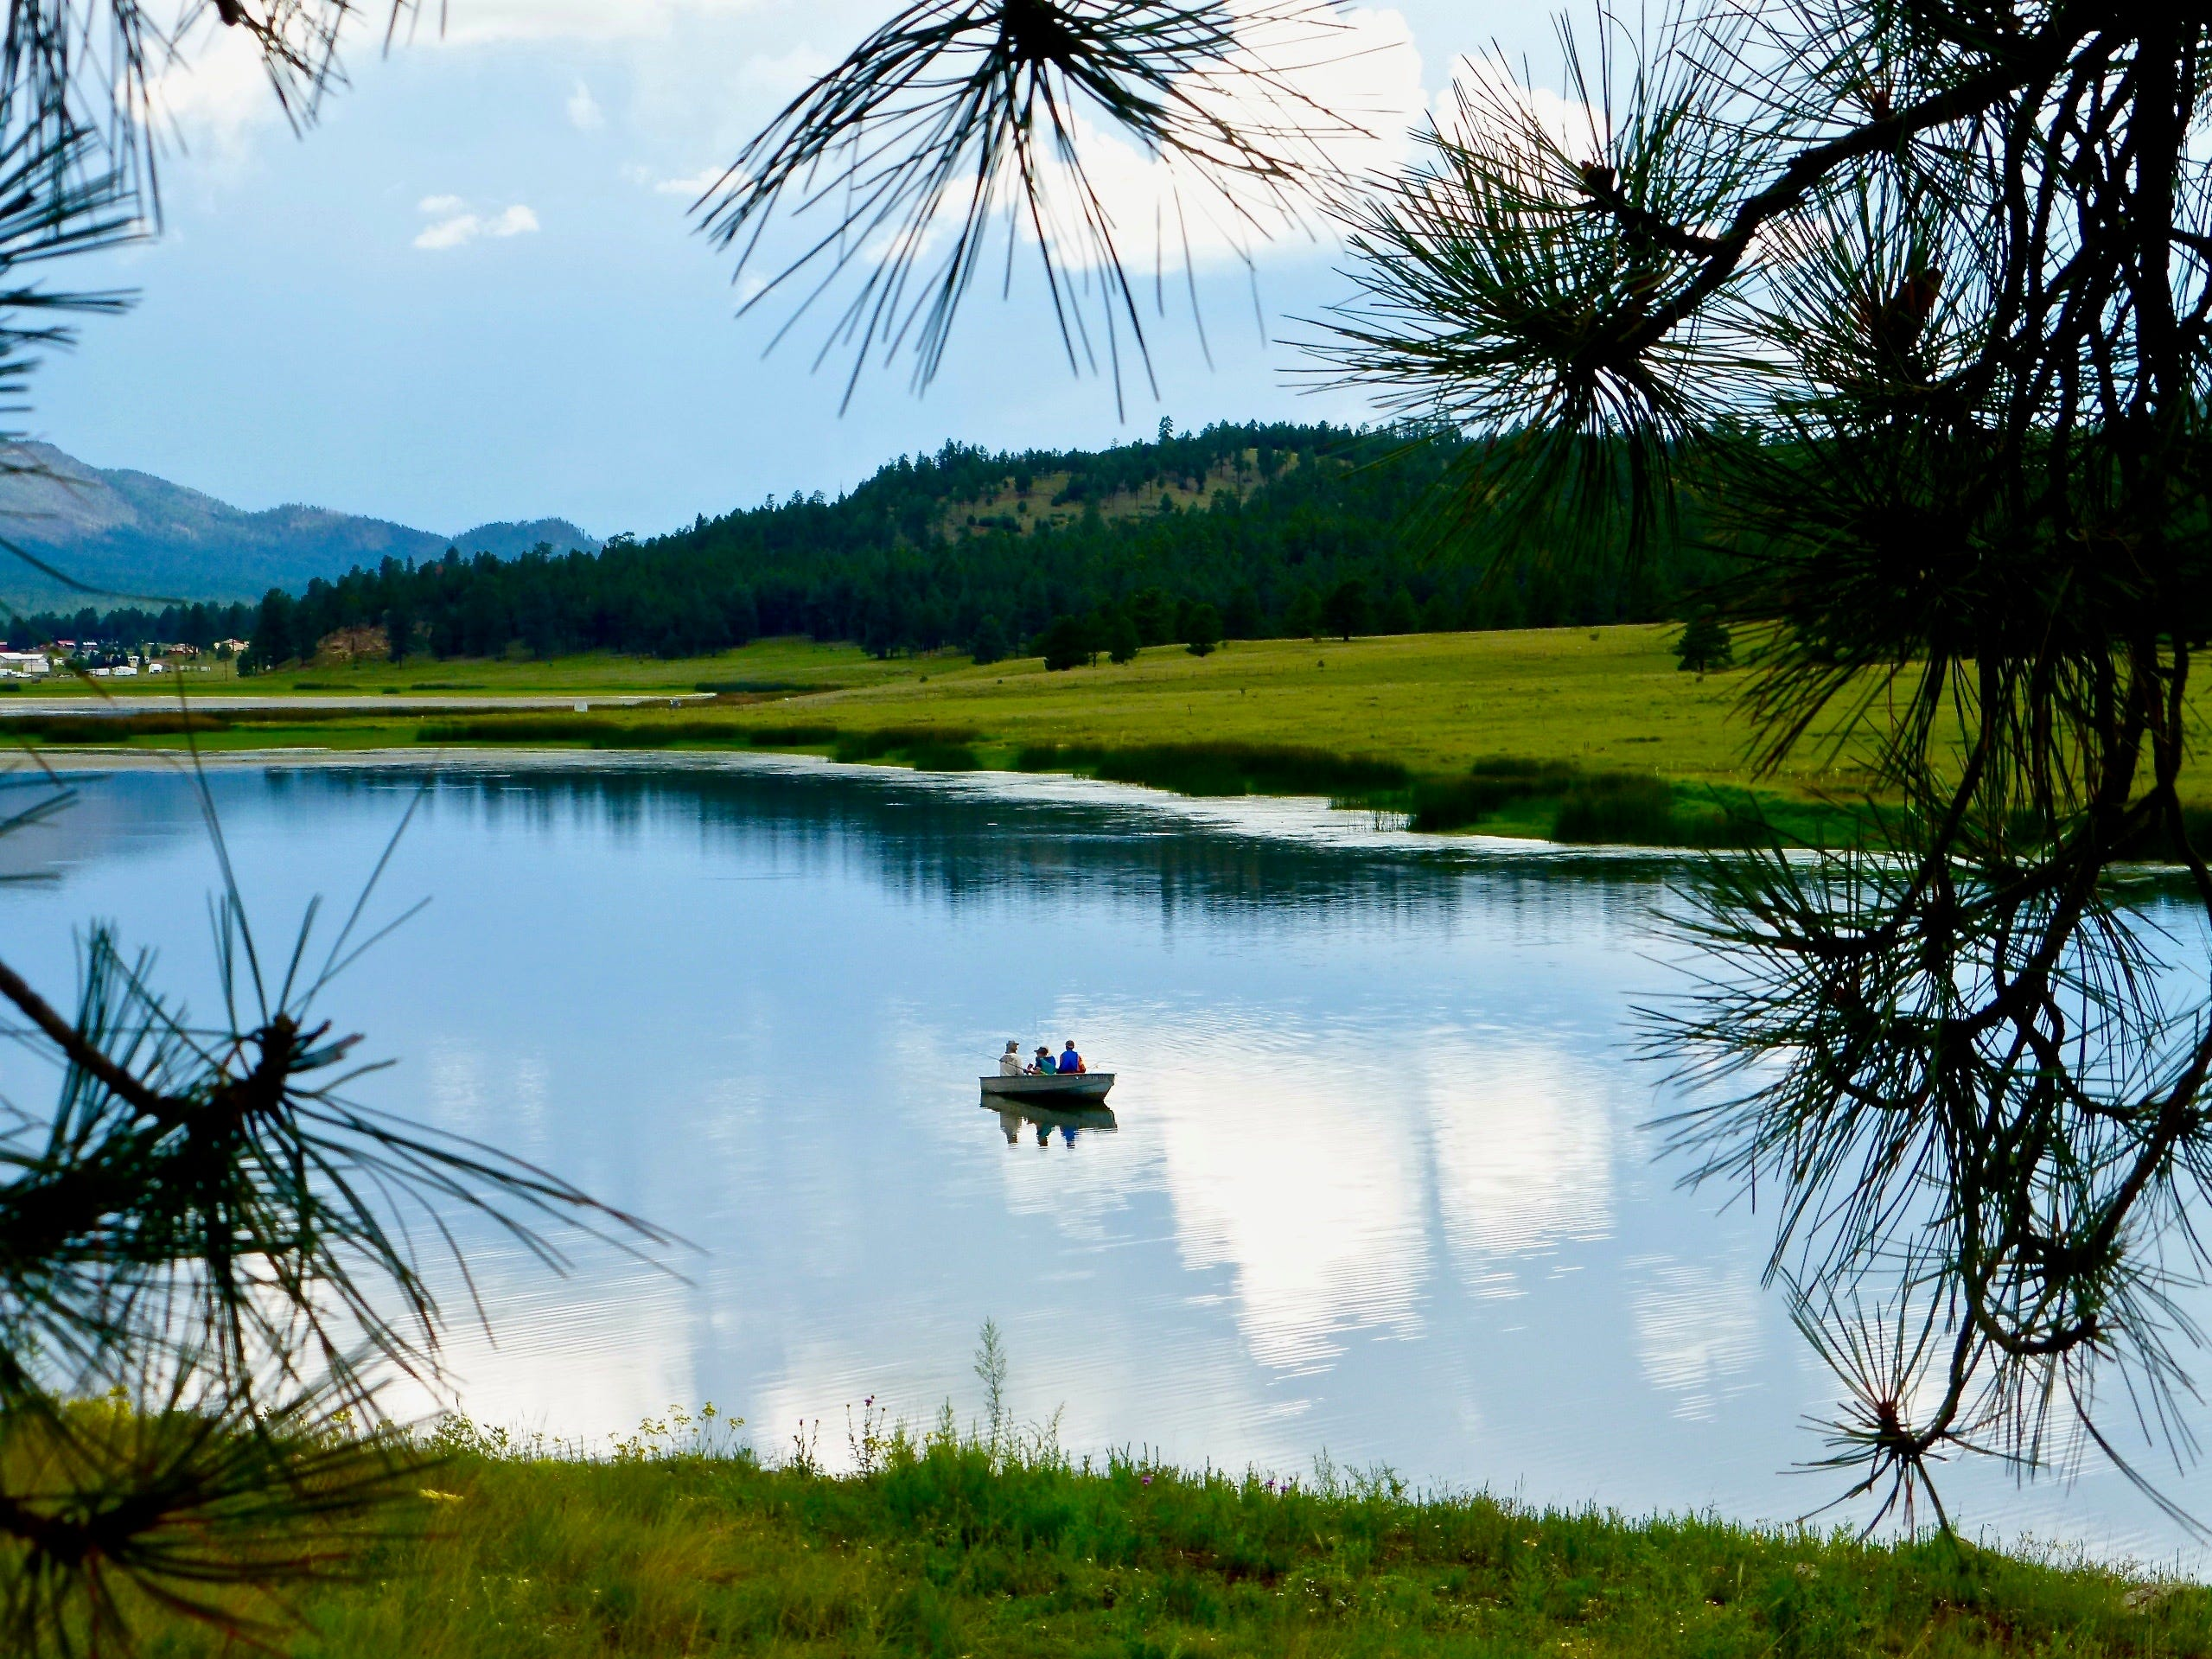 Anglers try their luck at Luna Lake, with the small town of Alpine visible in the distance.